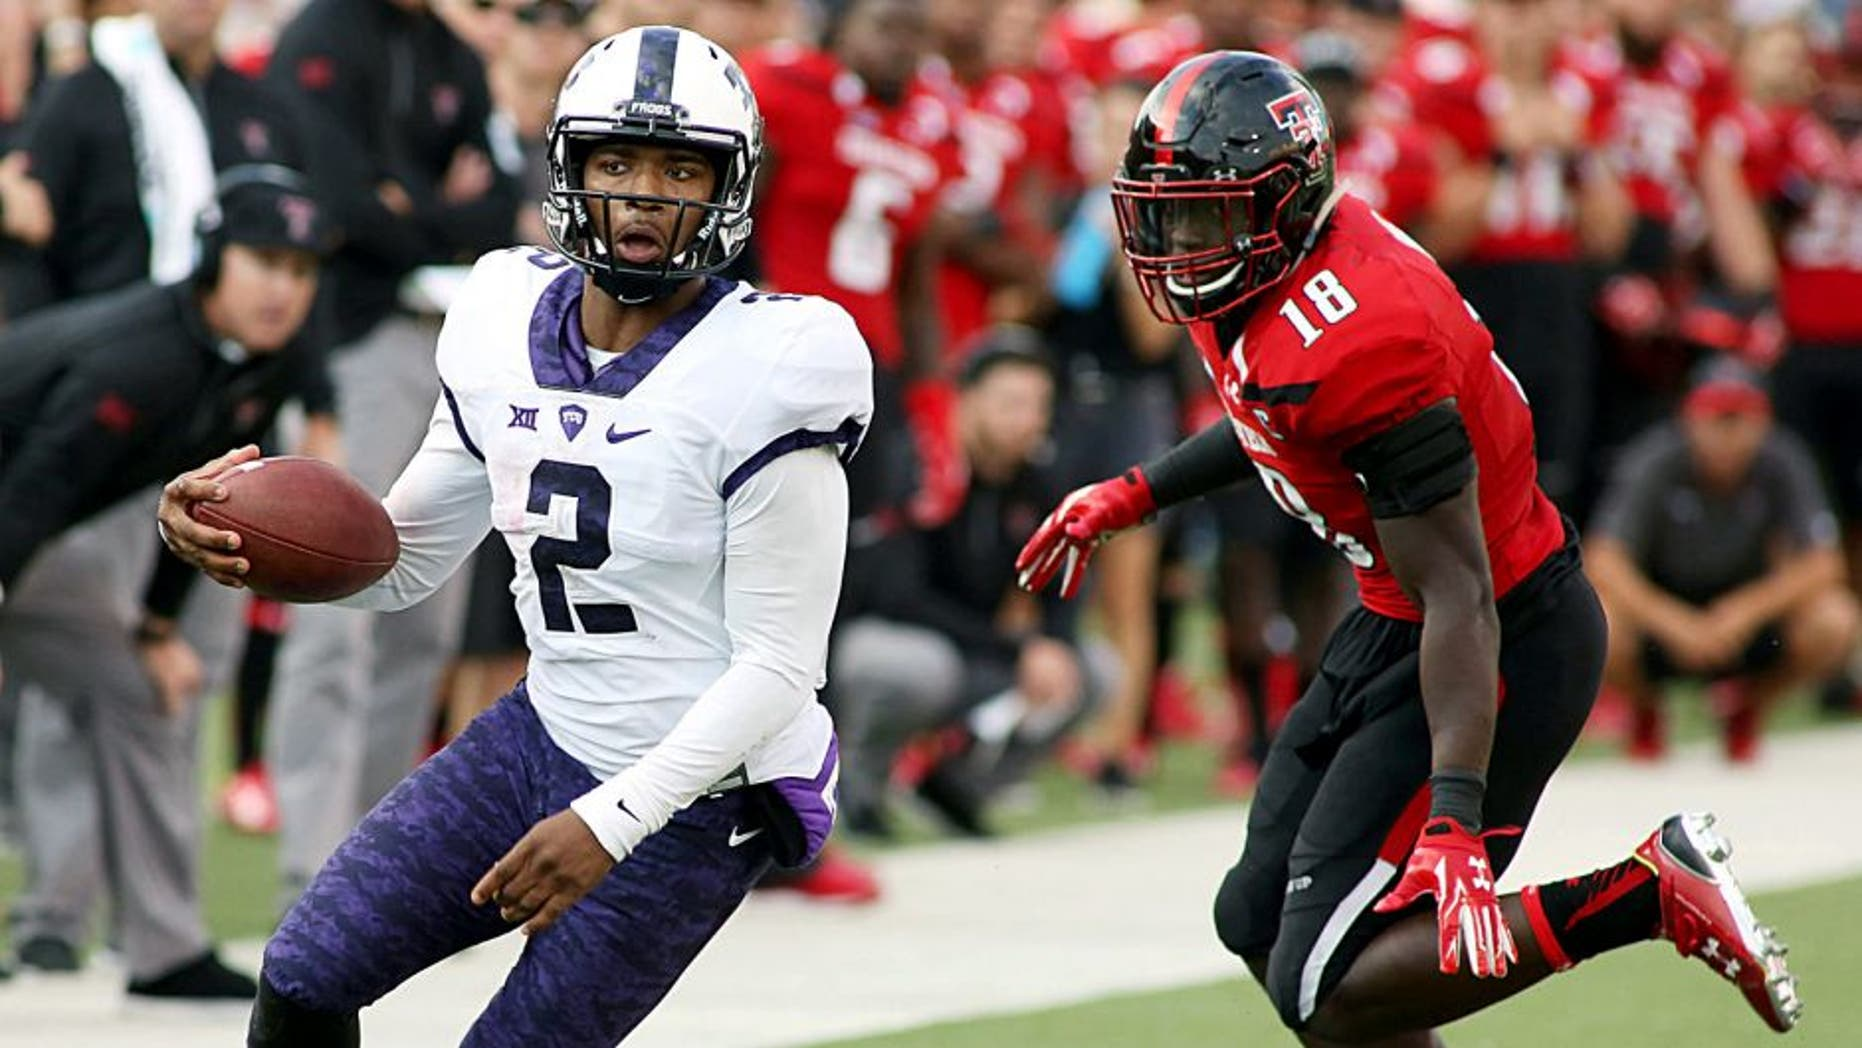 Sep 26, 2015; Lubbock, TX, USA; Texas Christian University Horned Frogs quarterback Trevone Boykin (2) looks for running room against the Texas Tech Red Raiders in the second half at Jones AT&T Stadium. TCU defeated Texas Tech 55-52. Mandatory Credit: Michael C. Johnson-USA TODAY Sports